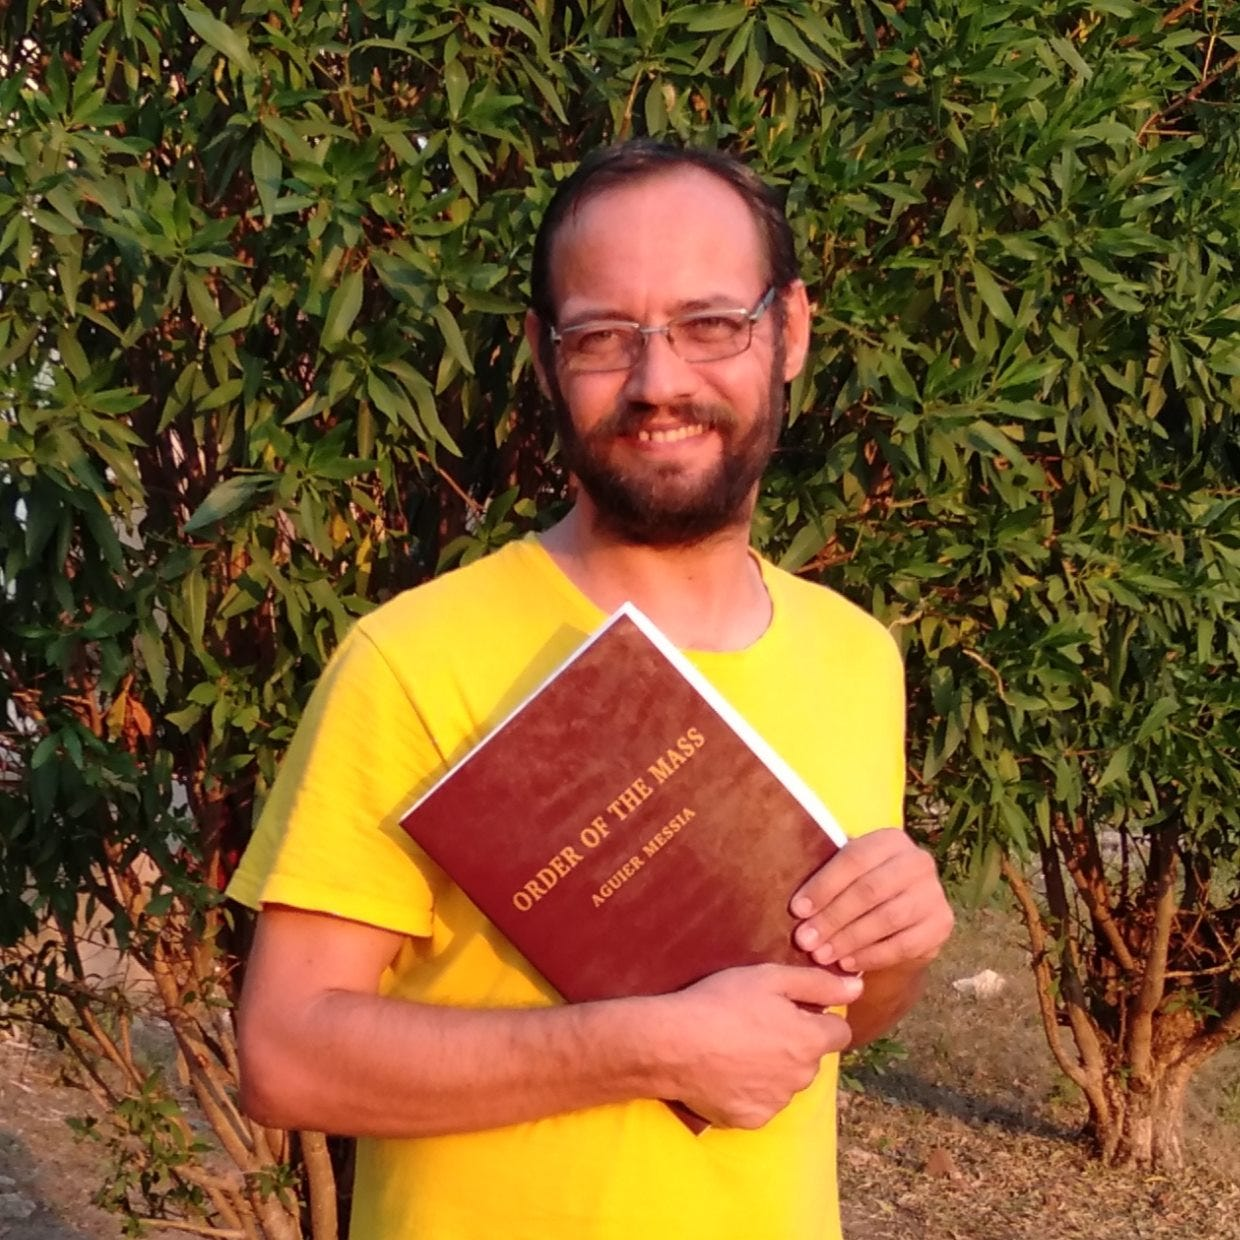 May be an image of 1 person, standing, outerwear, book and text that says 'MASS THE MESSIA OF ORDER AGUIER'